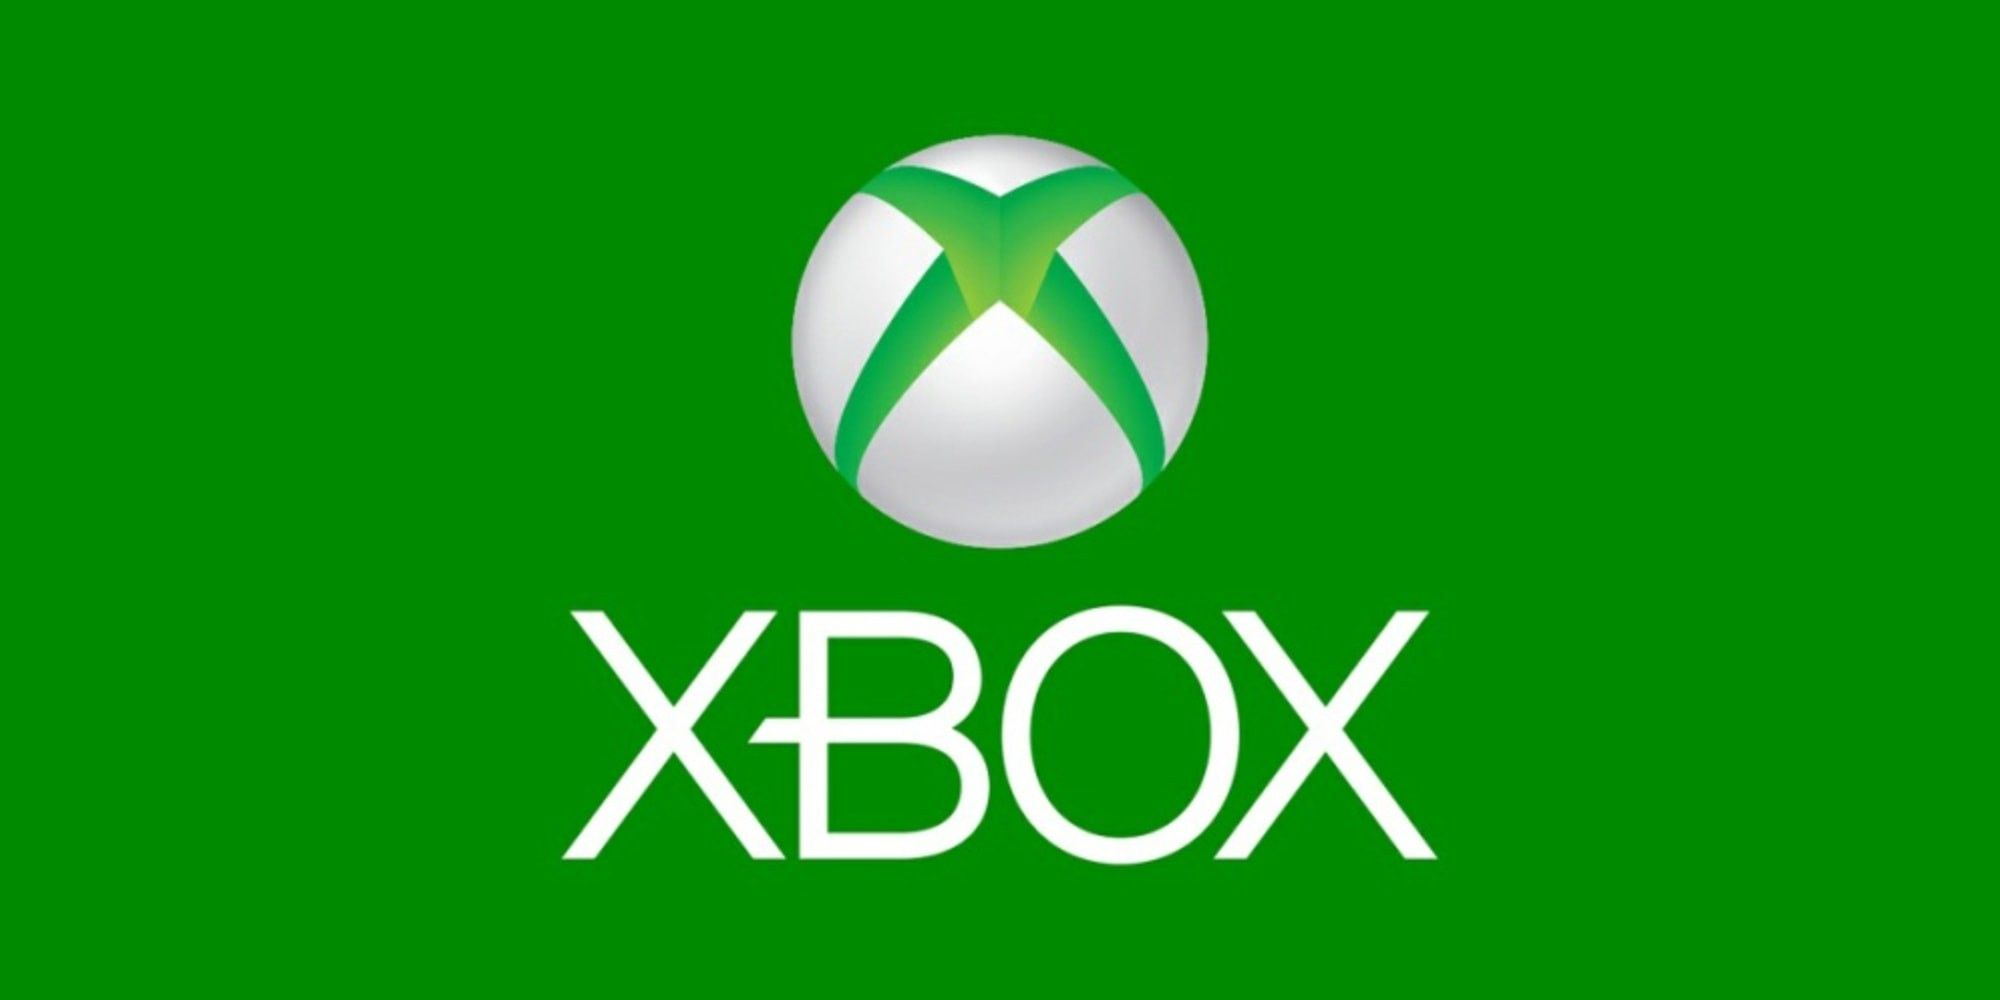 Xbox Tricks People Into Saying It Has Good Games, Sorry Sony